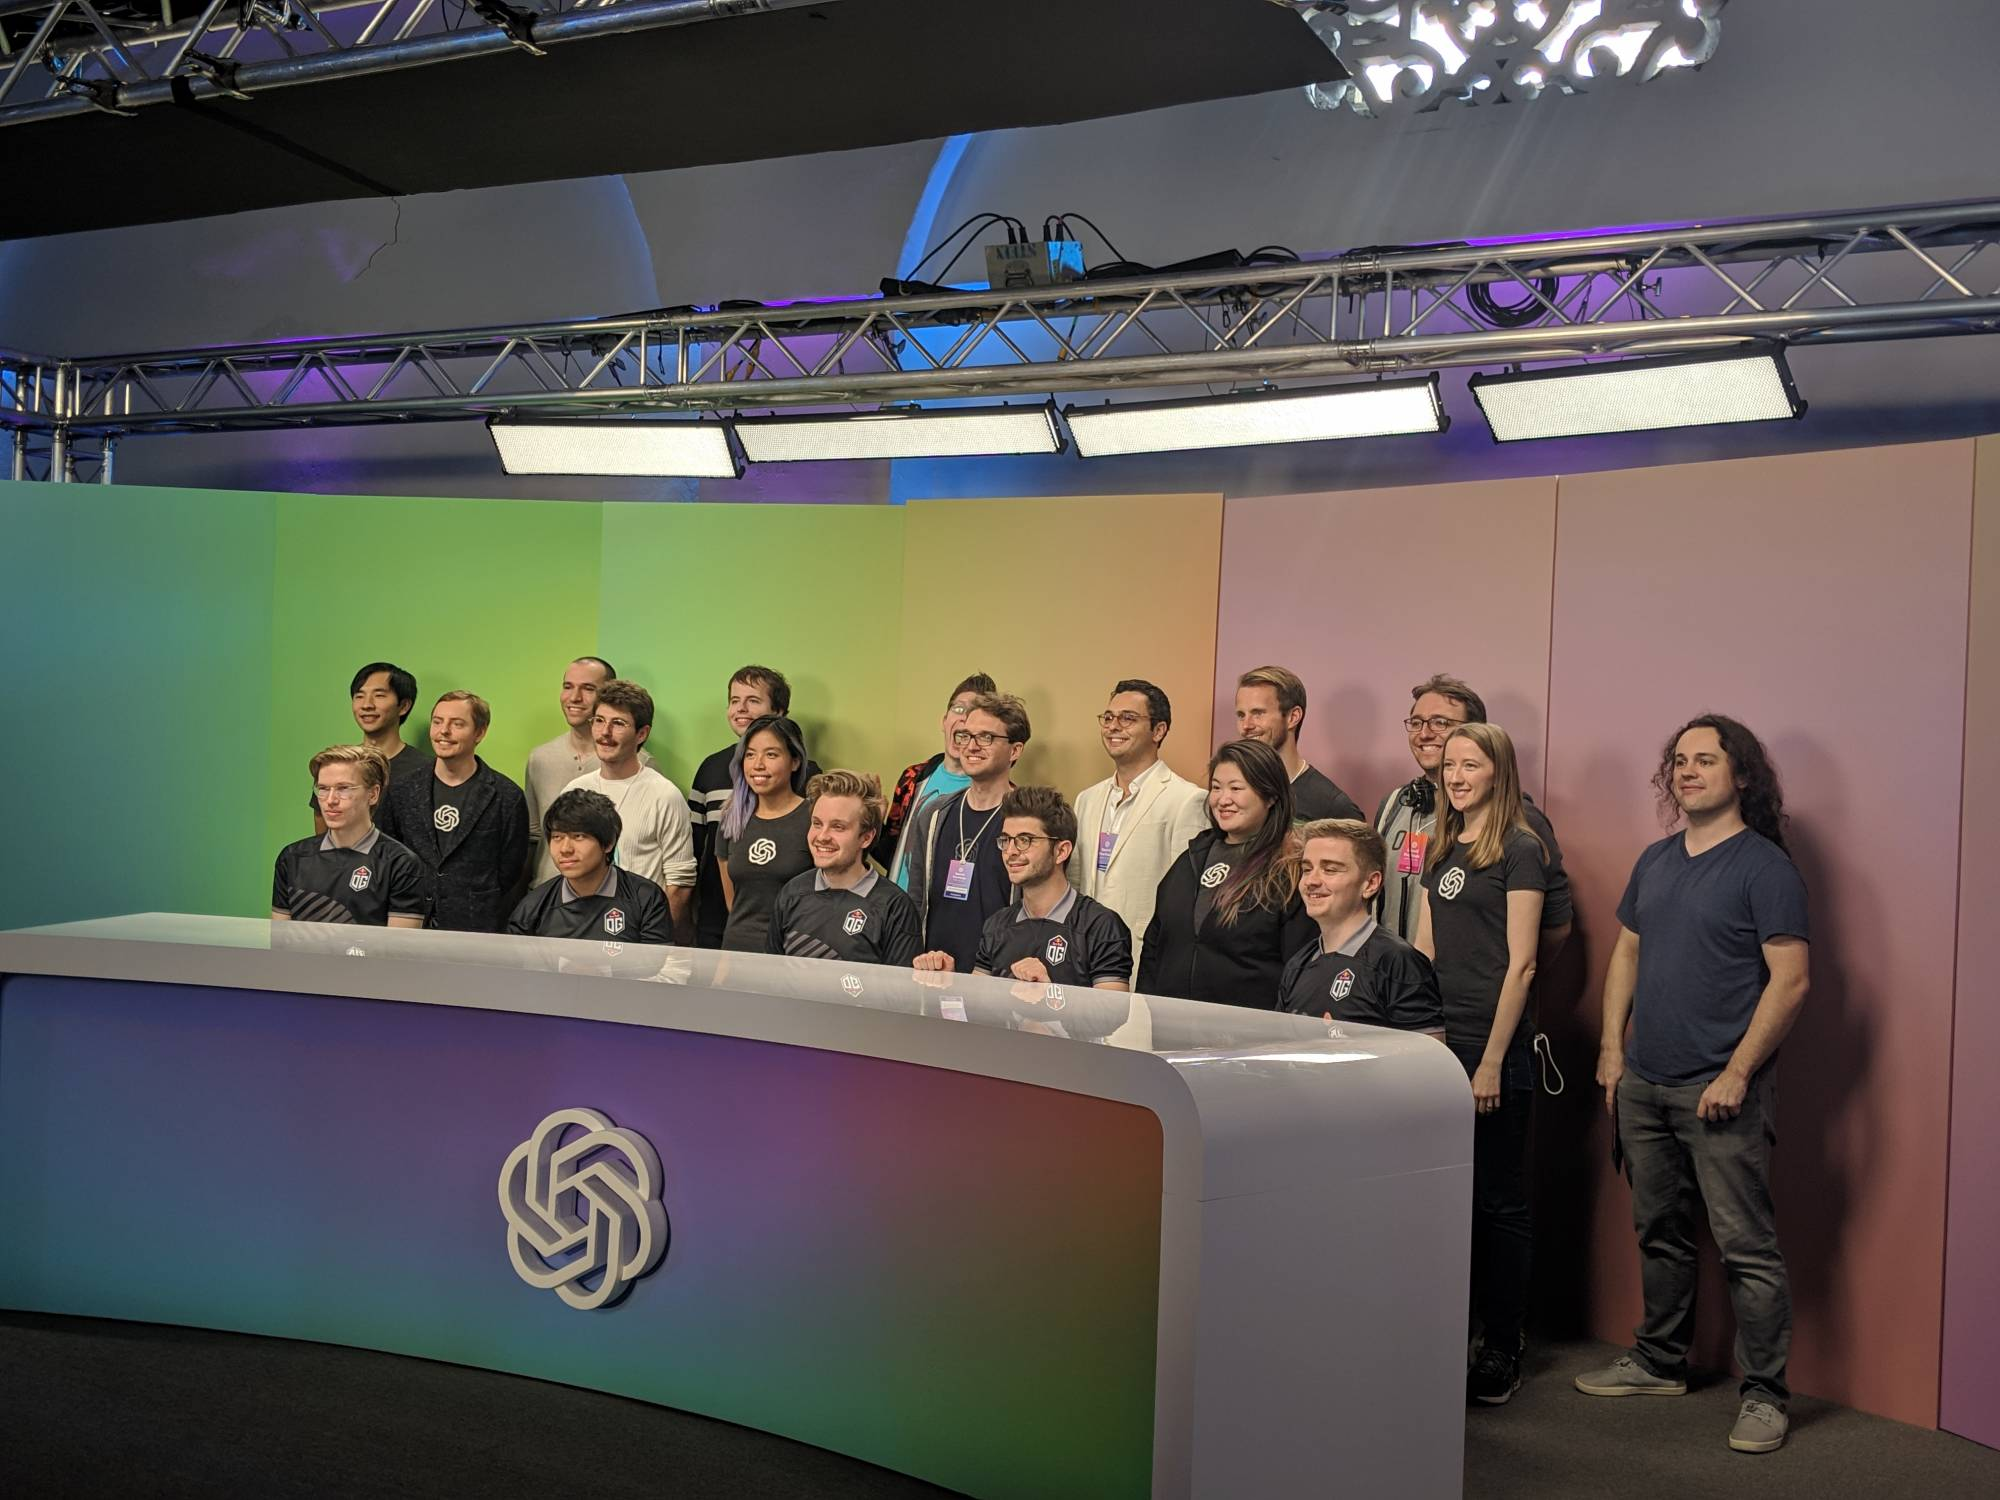 OpenAI staff and members of Dota 2 e-sports team OG.